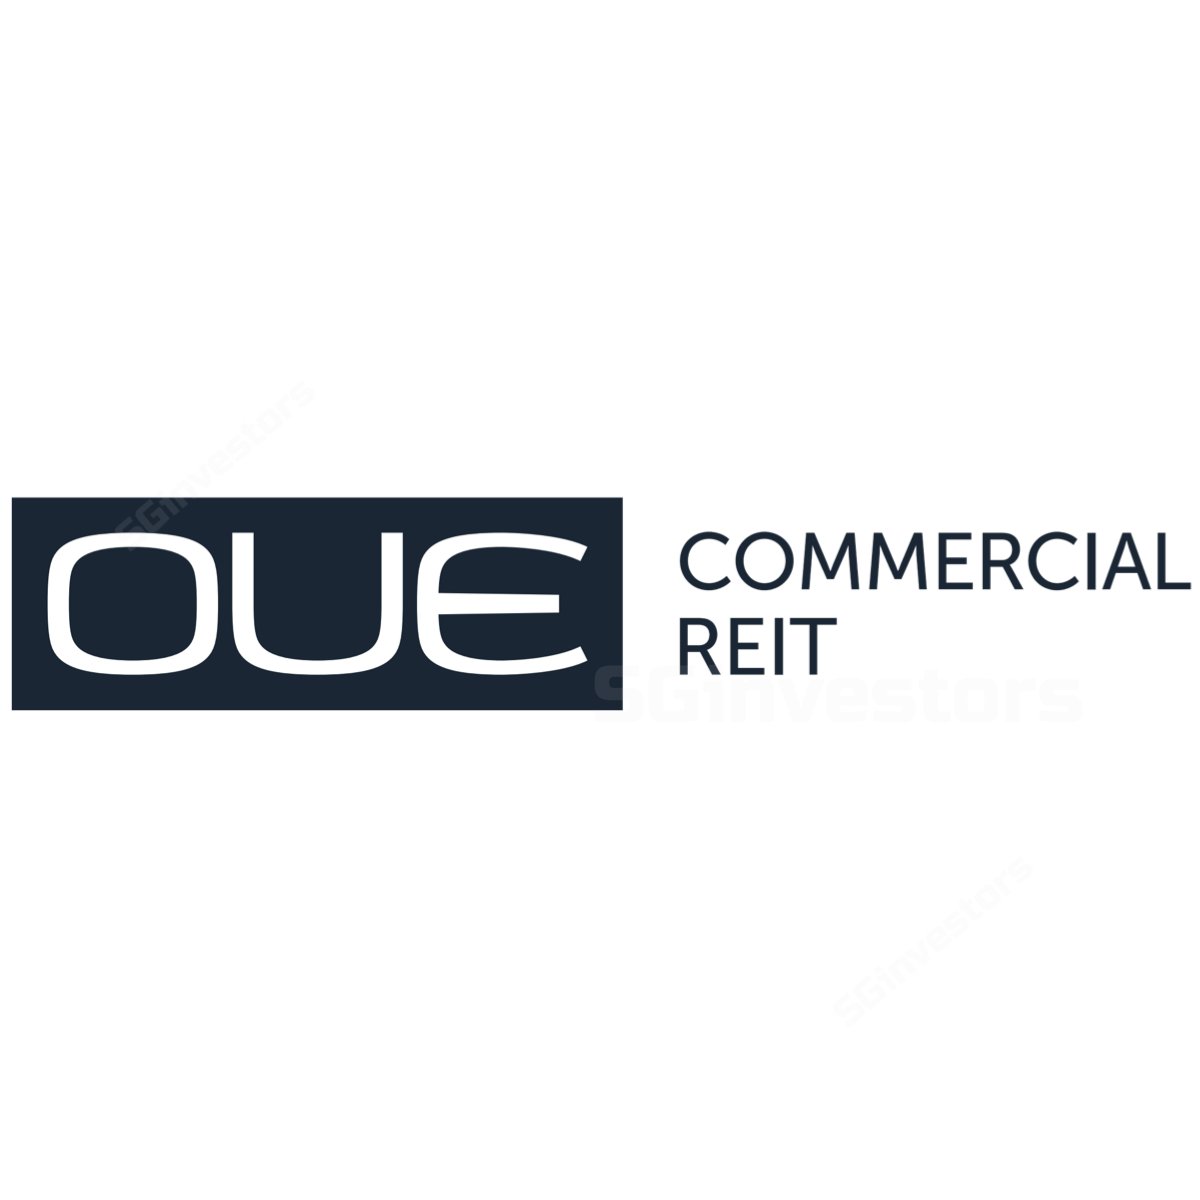 OUE Commercial REIT - DBS Vickers 2017-01-04: Concerns to weigh on share price